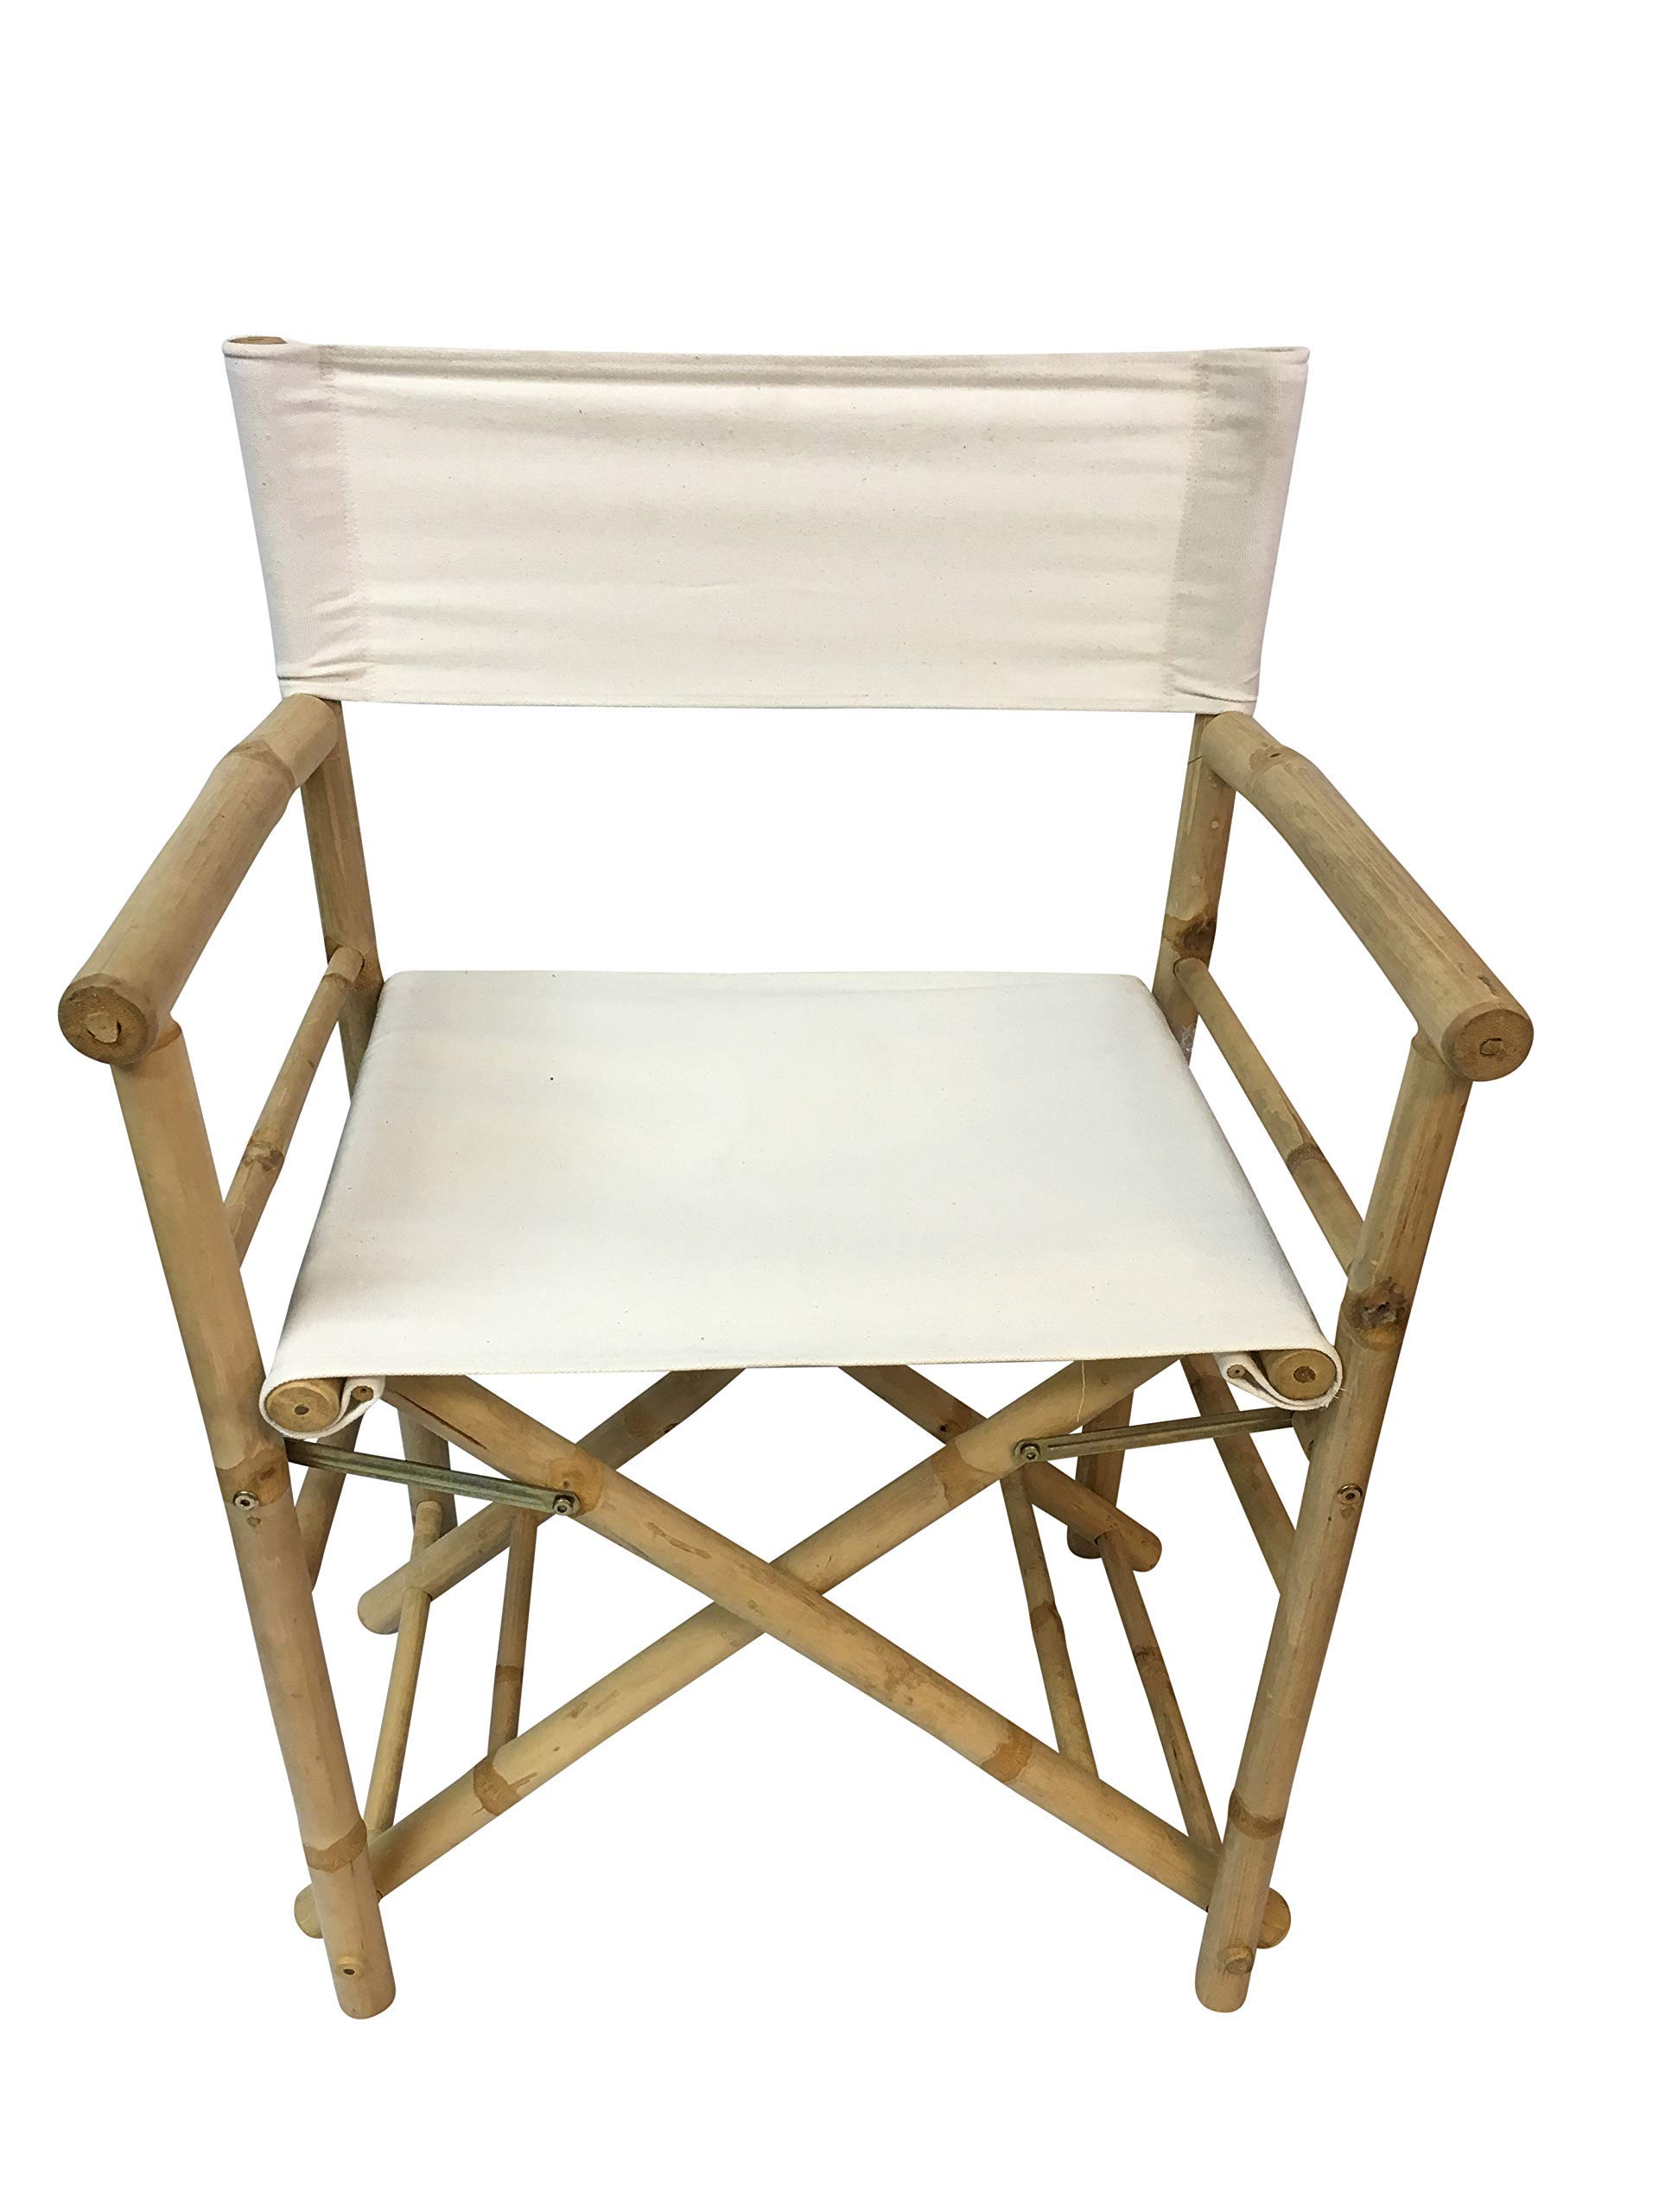 Master Garden Products Bamboo Director Chair, 35''H x 23''W x 19''D by Master Garden Products